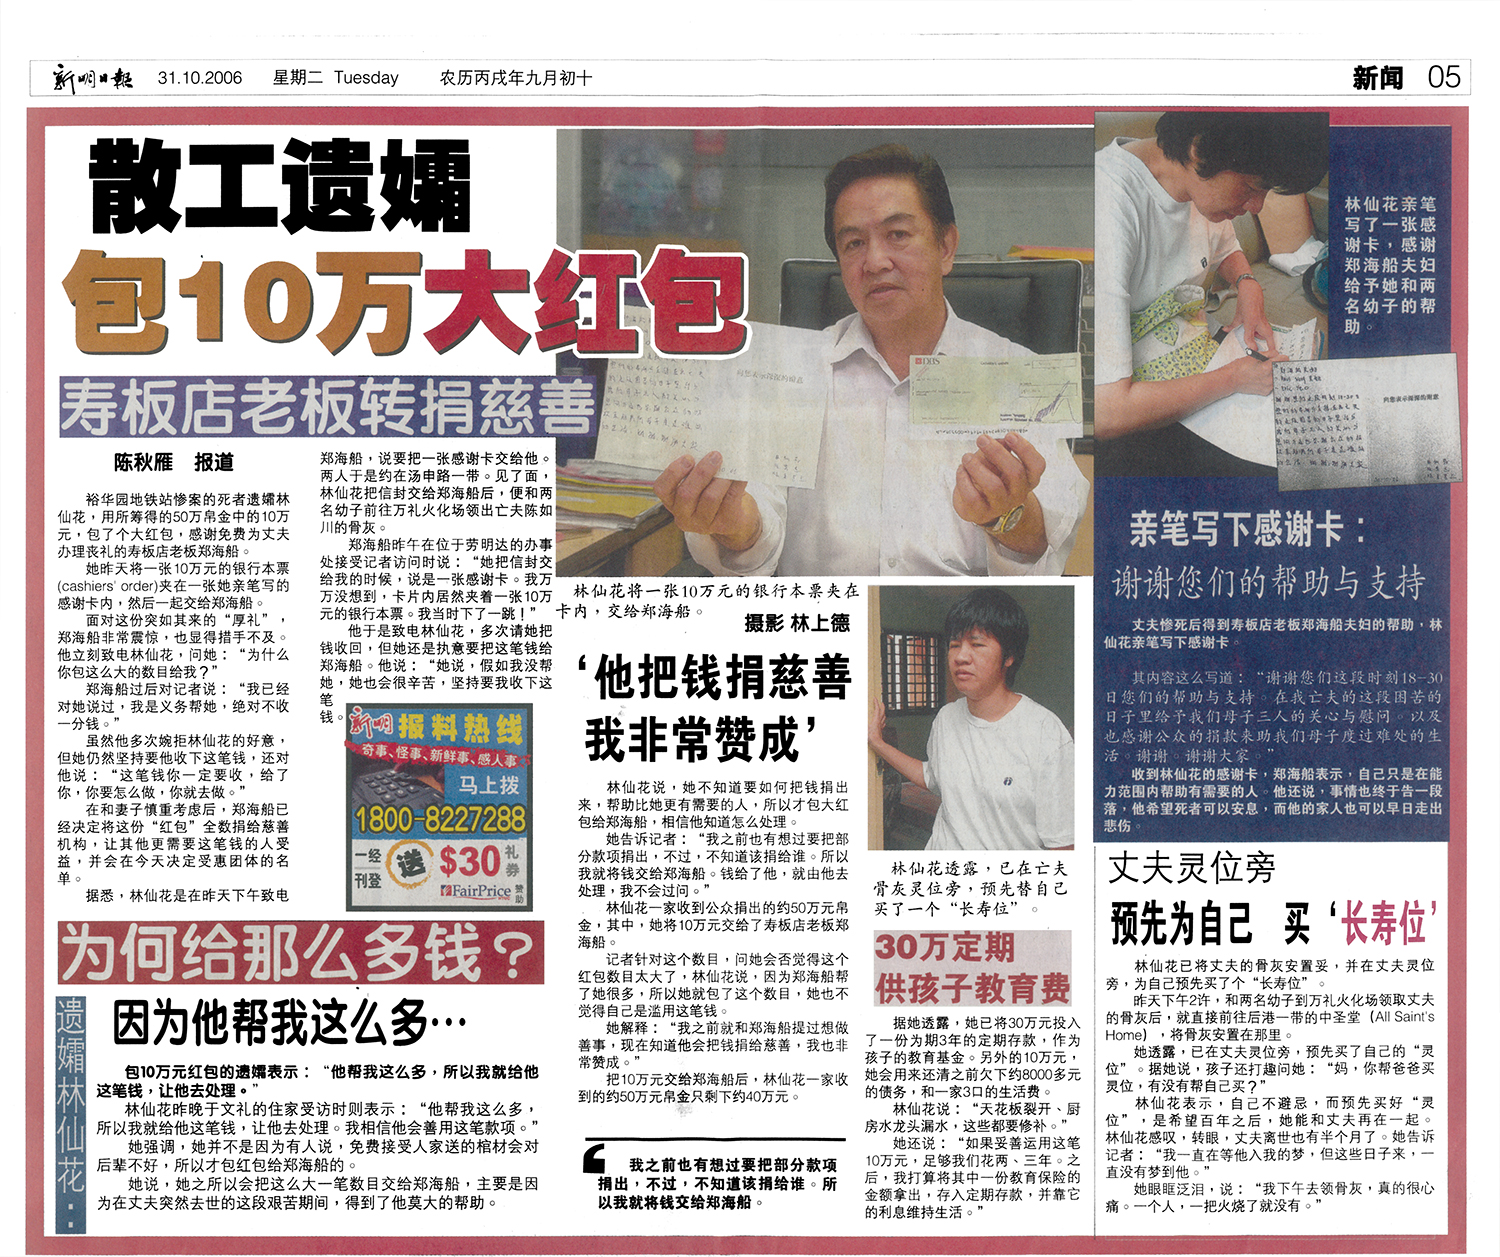 Article - 20061031